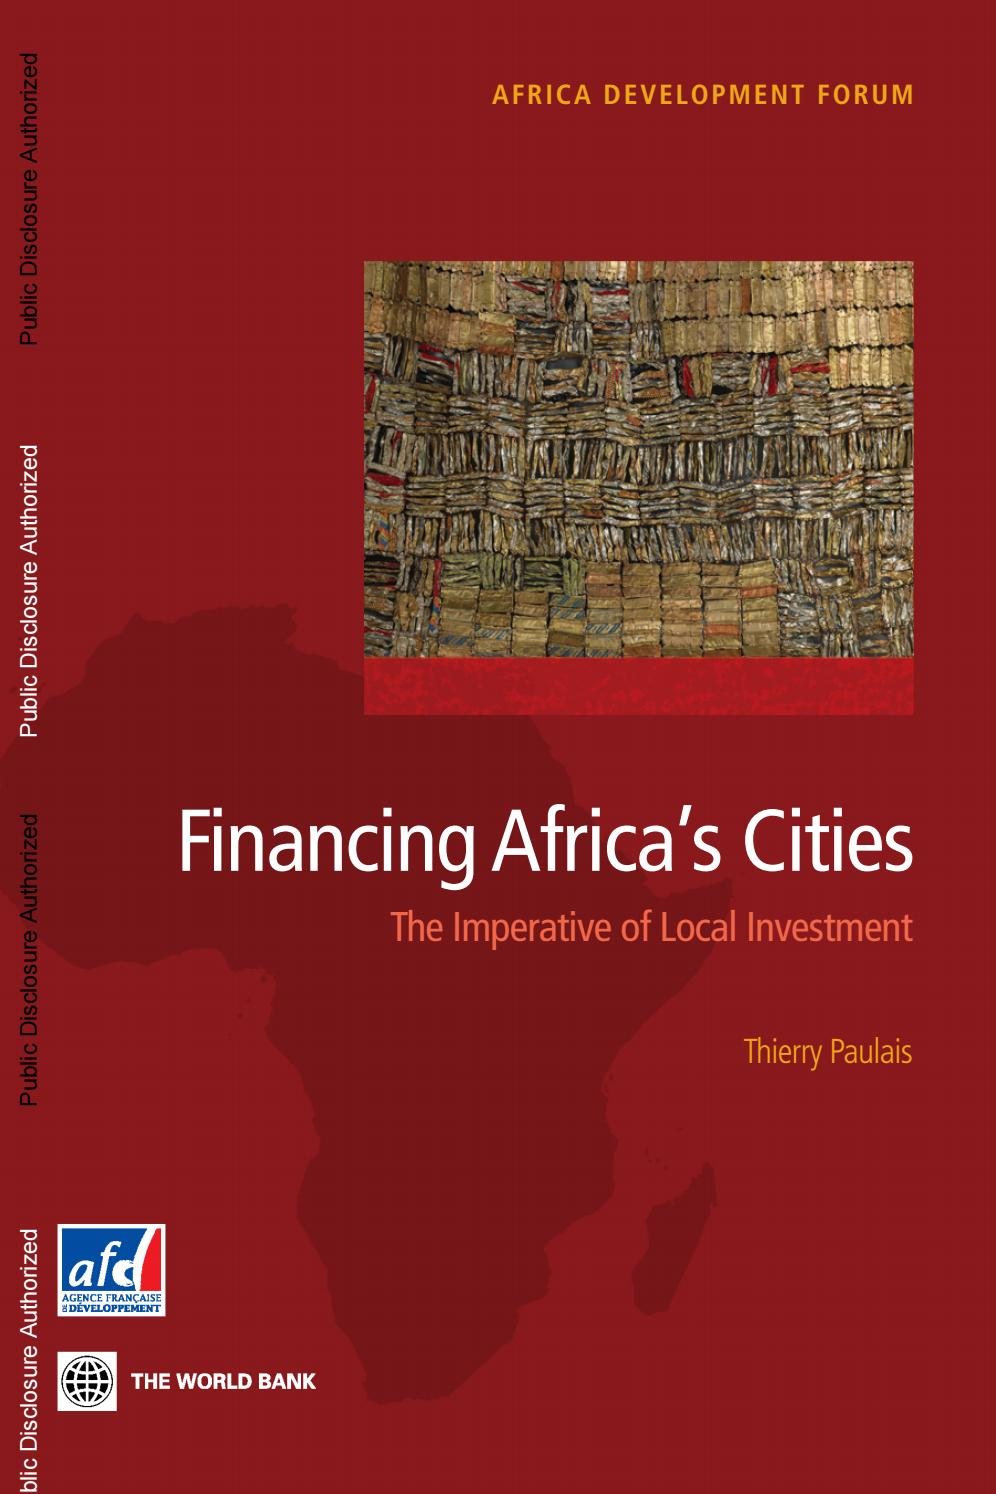 Financing Africa's Cities : The Imperative of Local Investment by